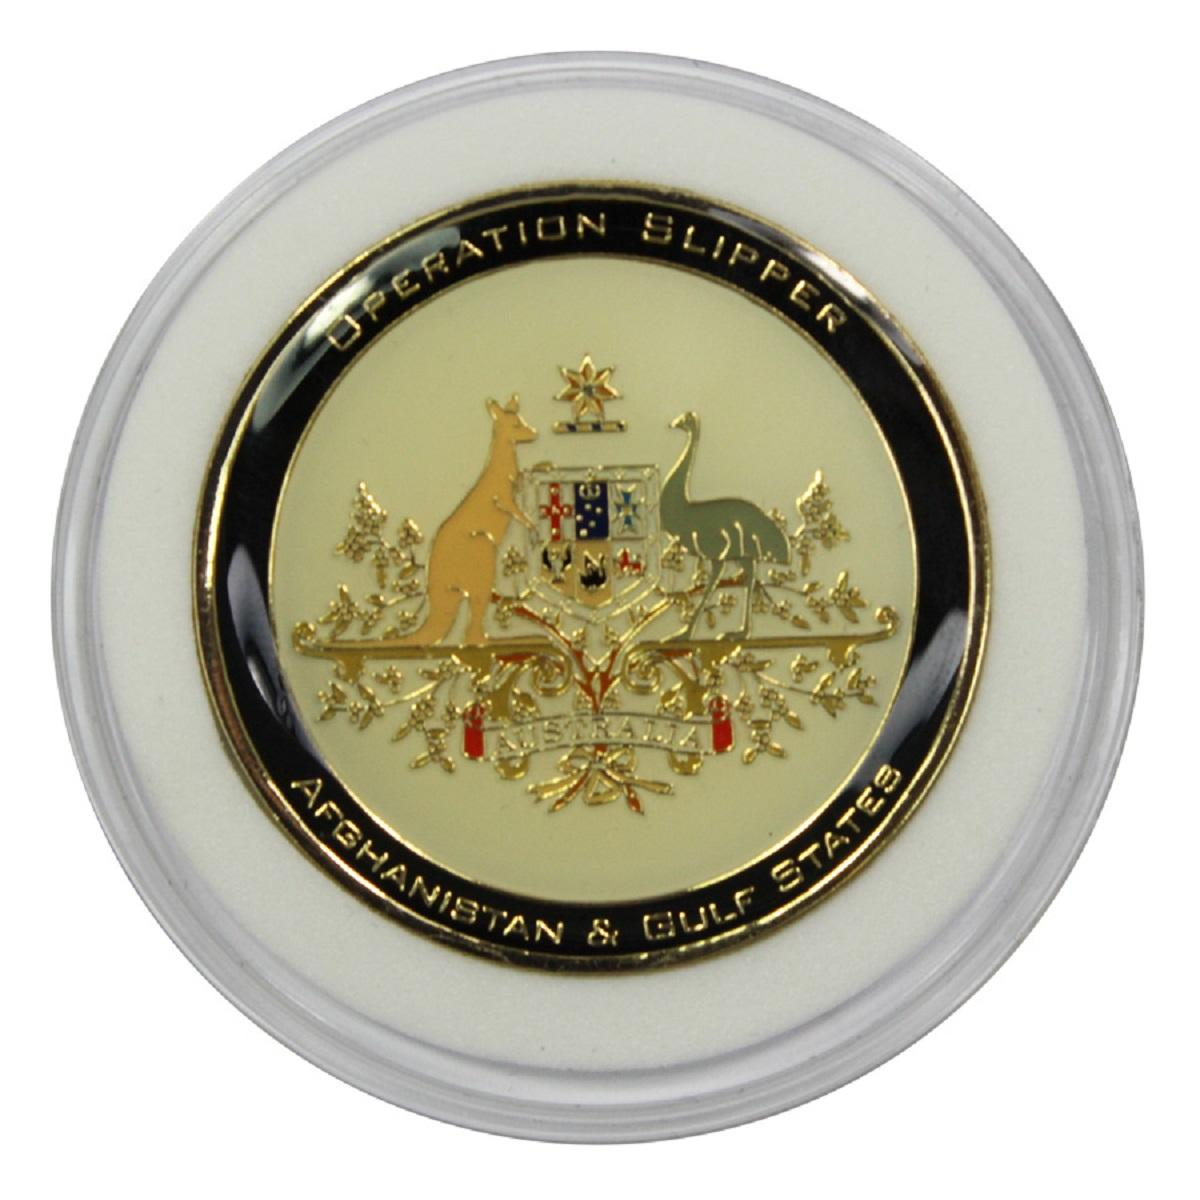 Australia. Limited official memento 'Operation Slipper' Afghanistan, July 2011 - April 2012